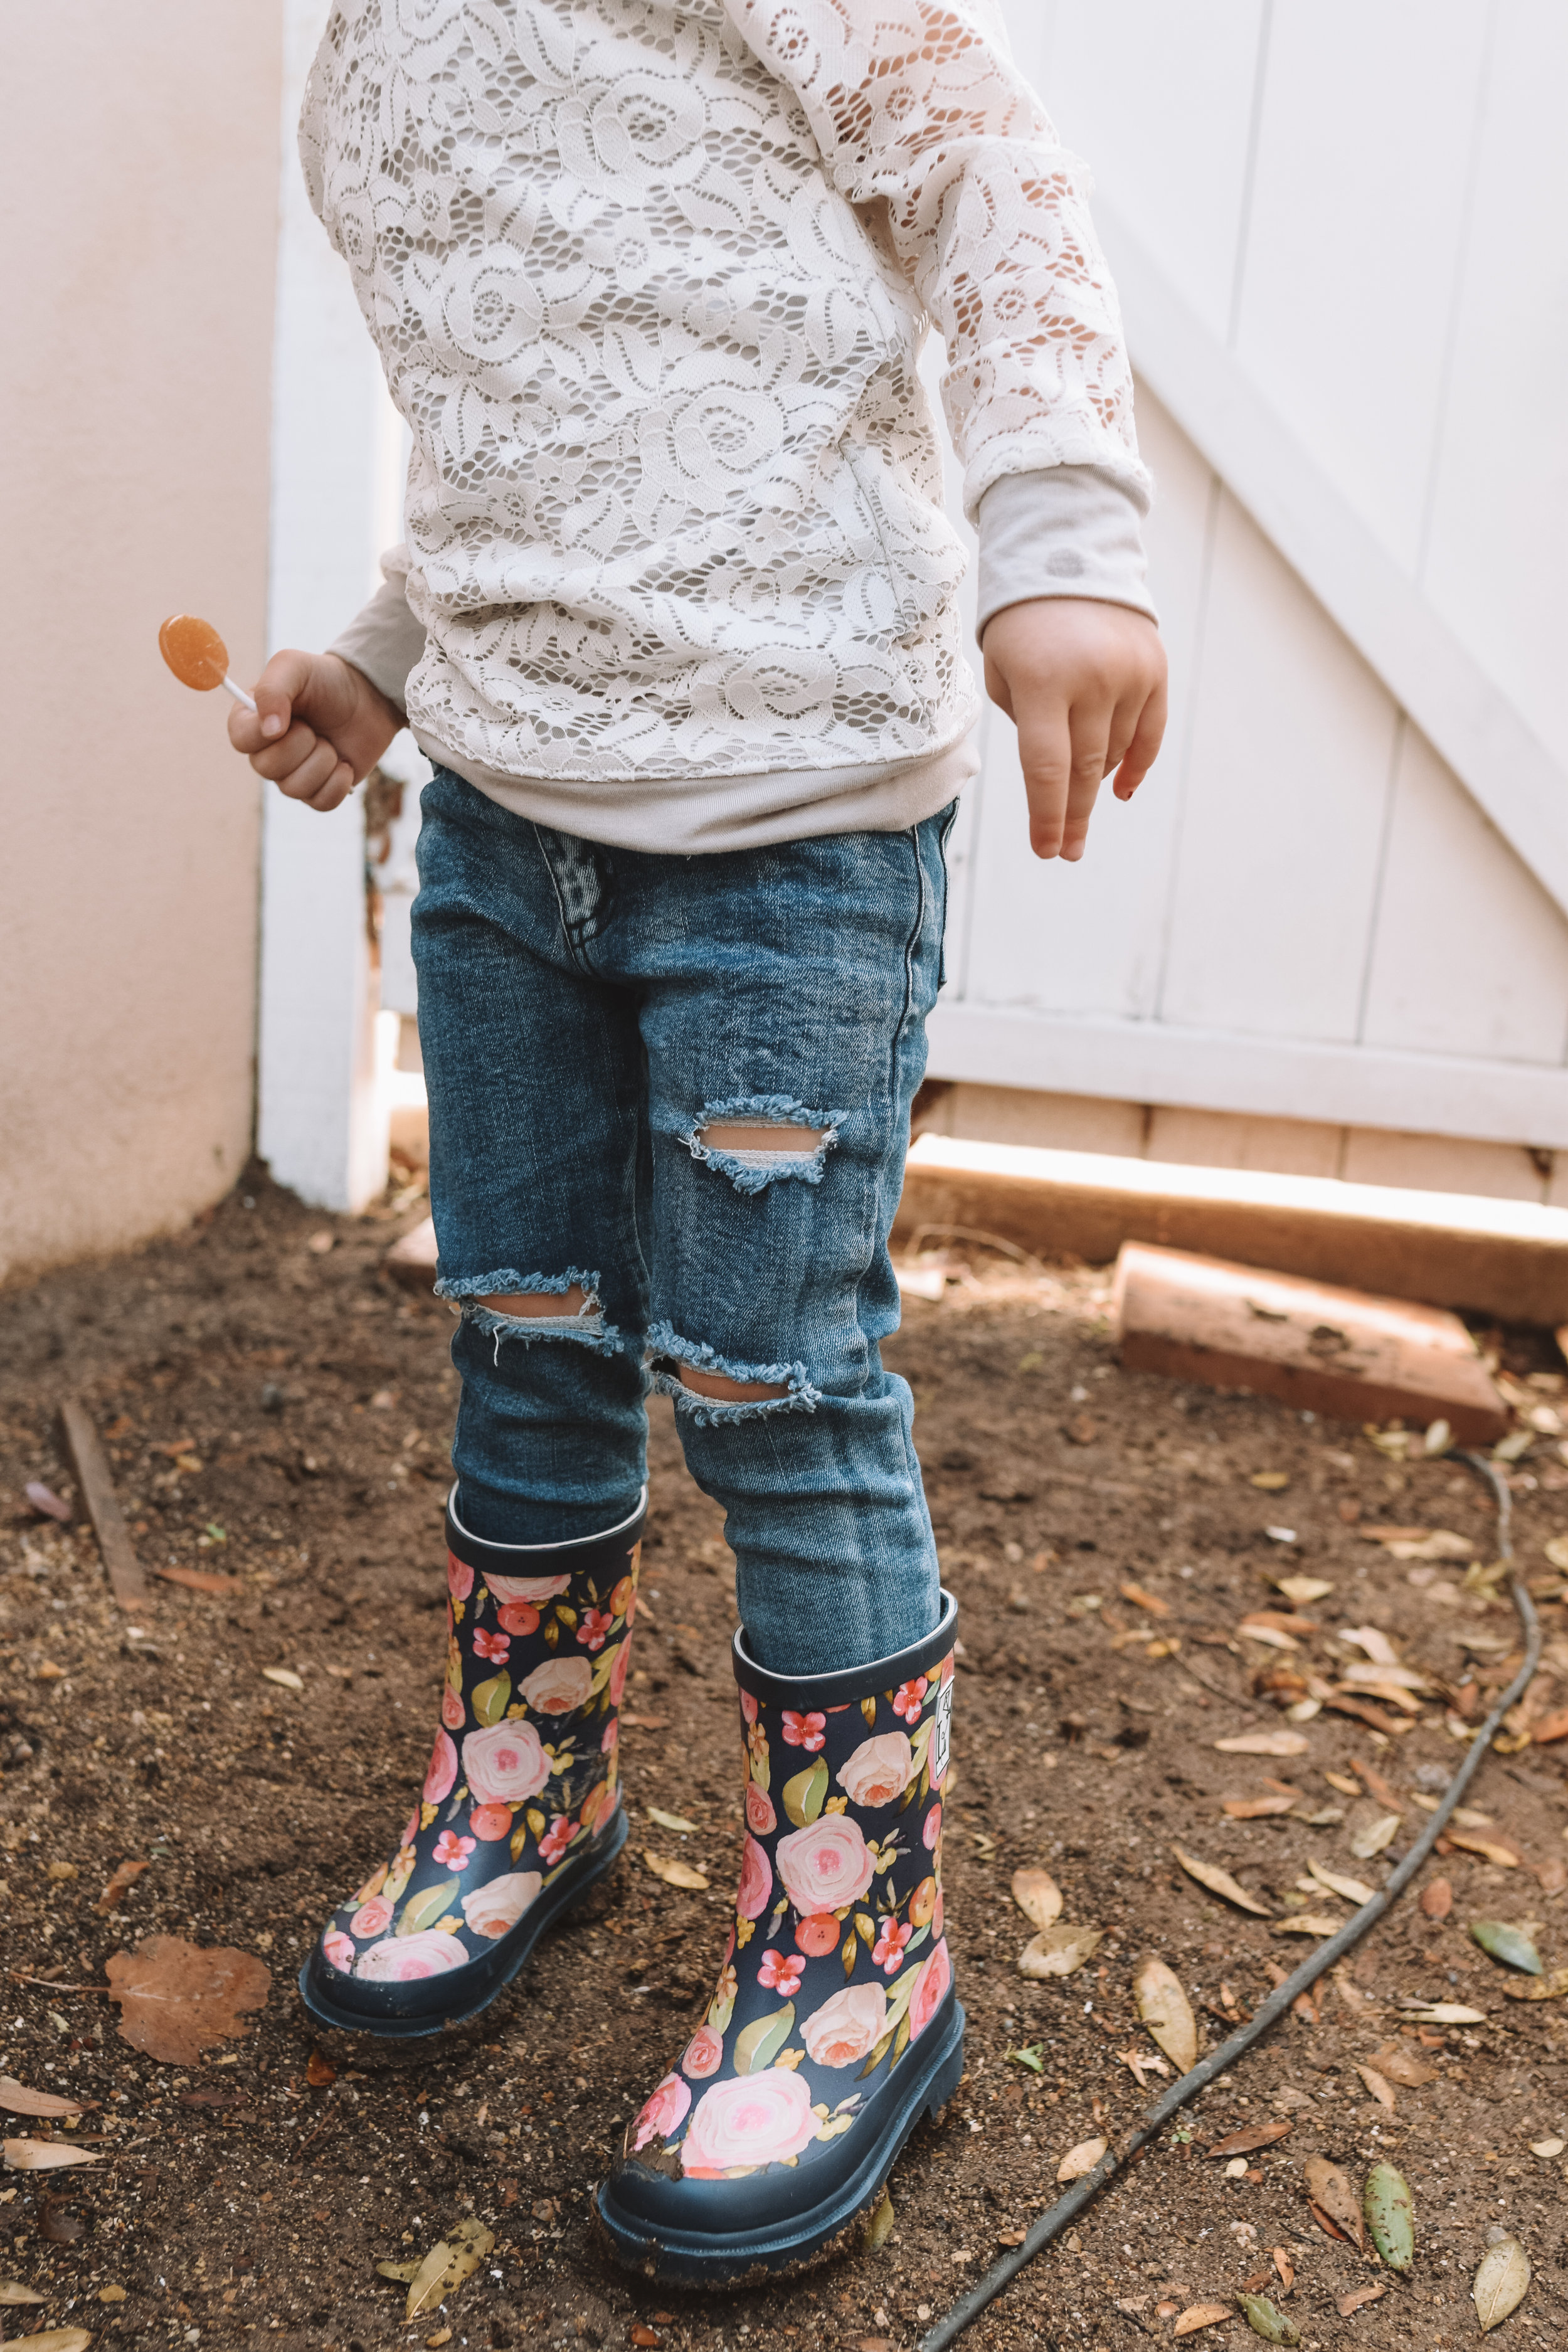 Cute Kids Baby Clothes Fashion - Floral Kids Rain Boots - The Overwhelmed Mommy Blogger